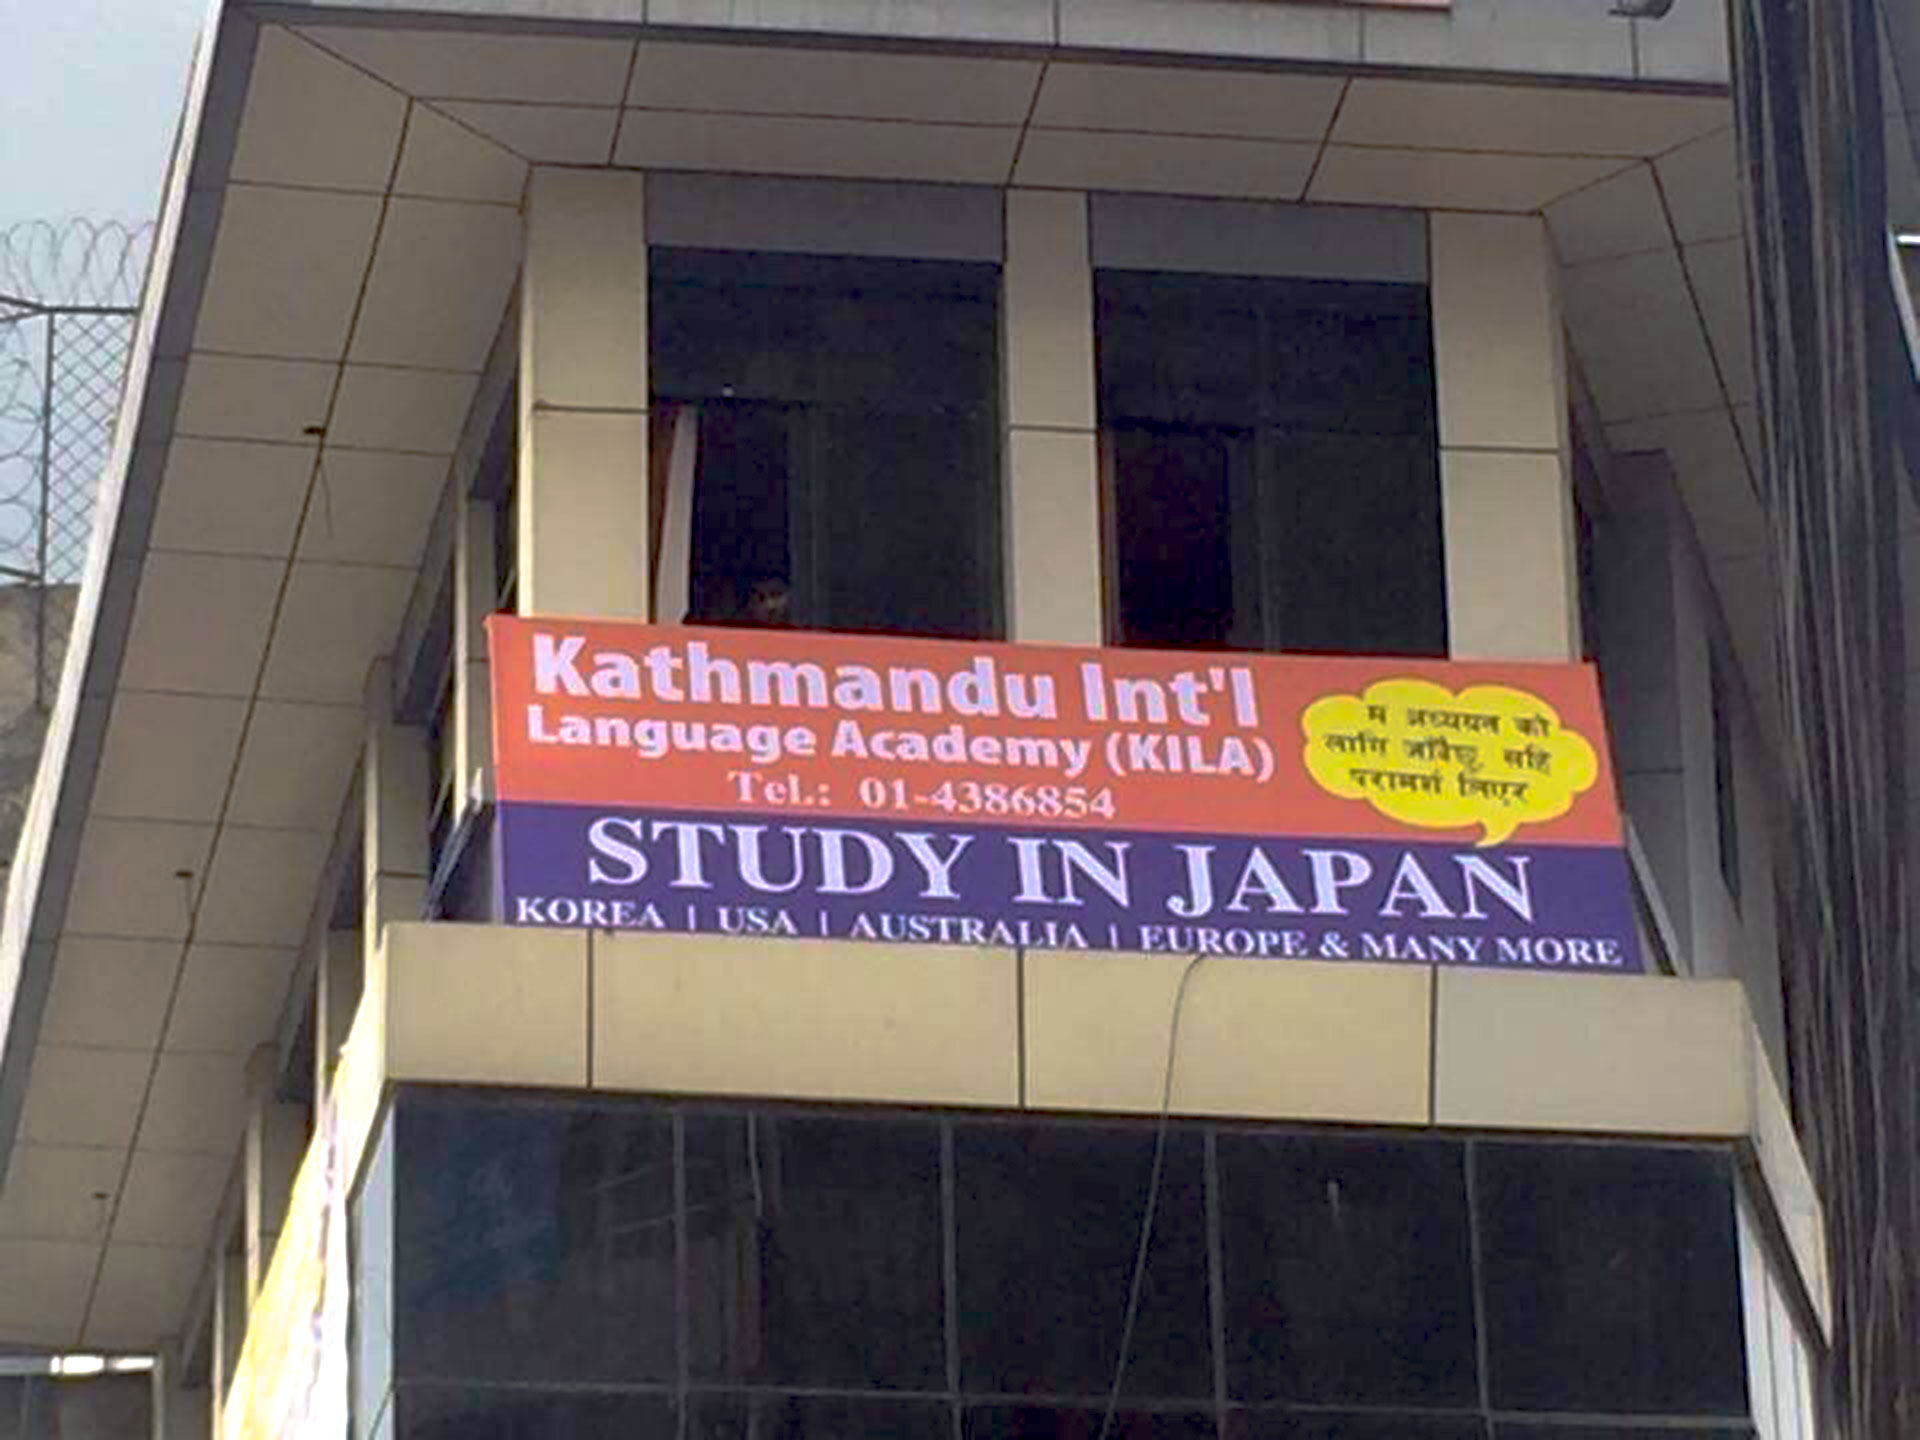 Kathmandu international language academy